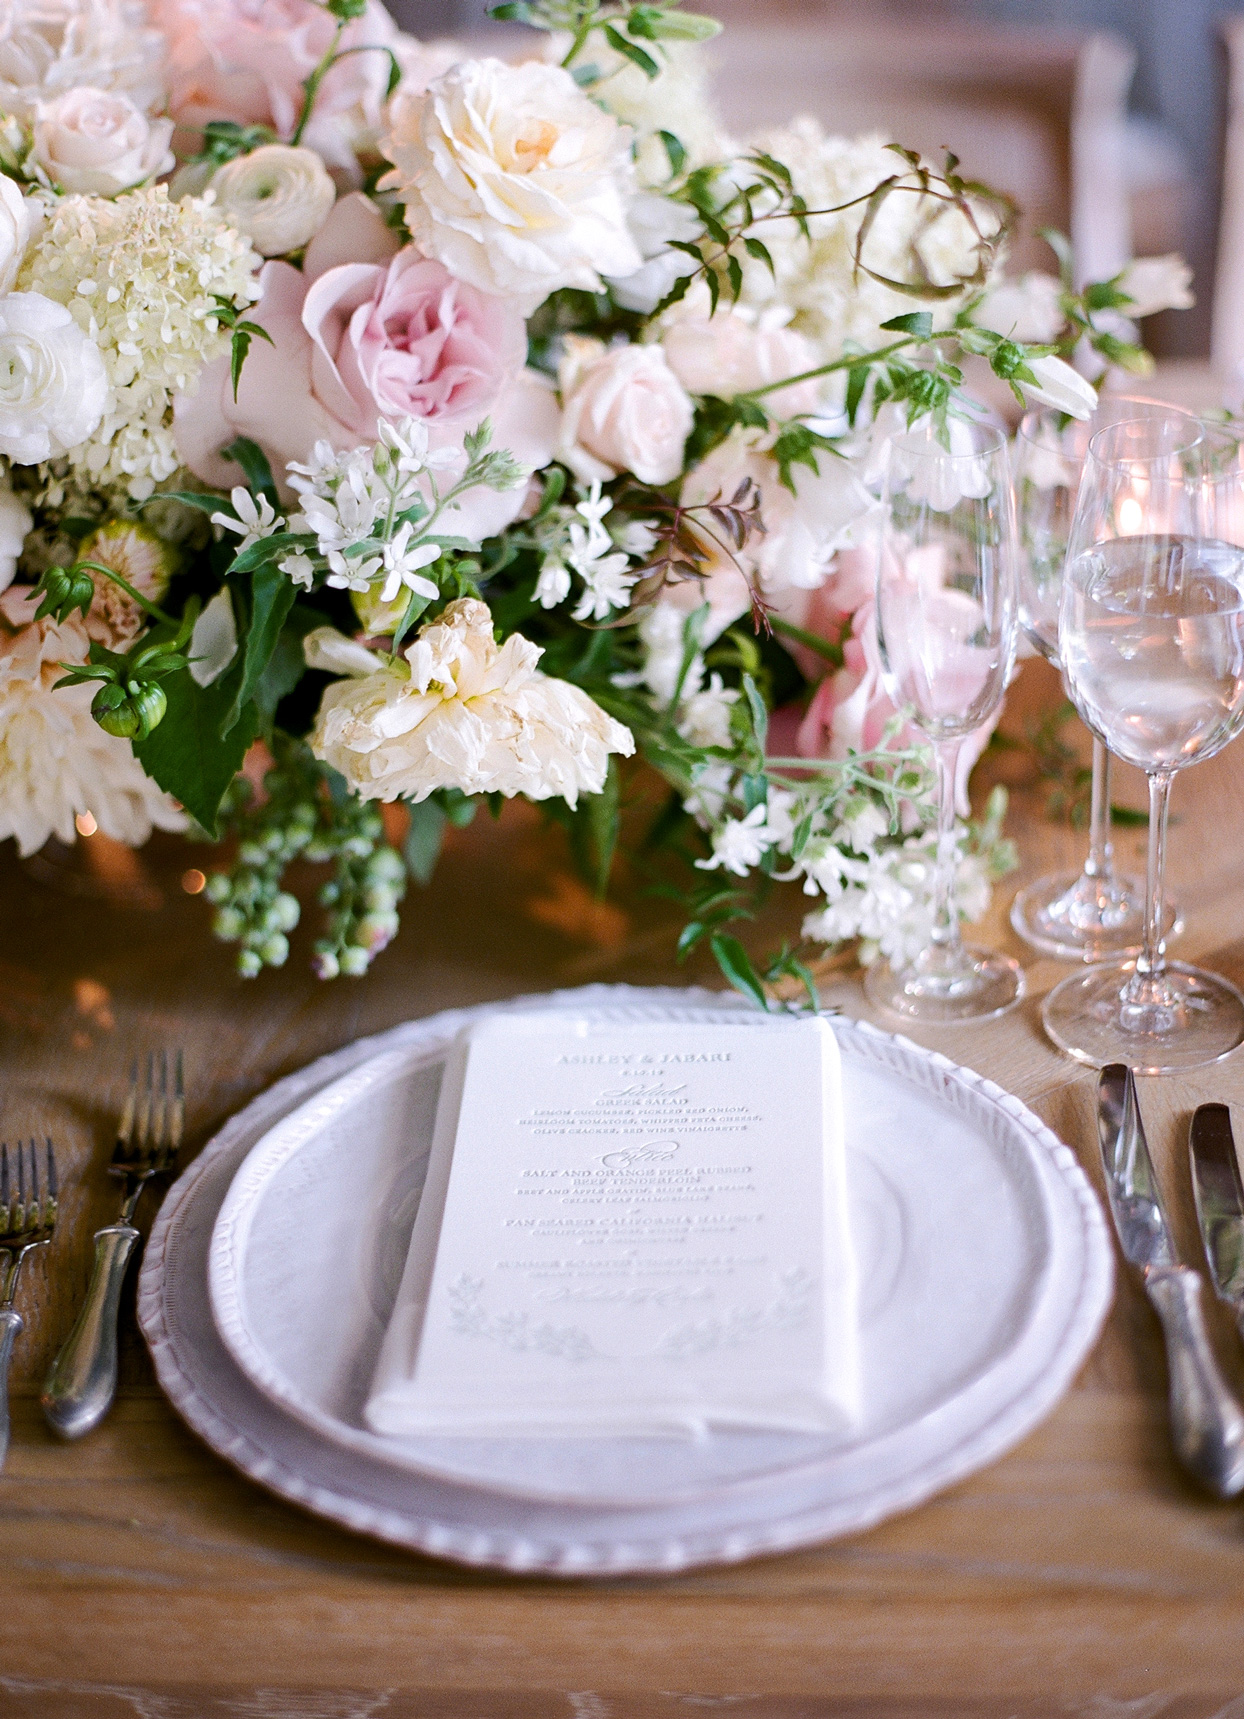 layered white plates with menu and white linen napkins reception place setting